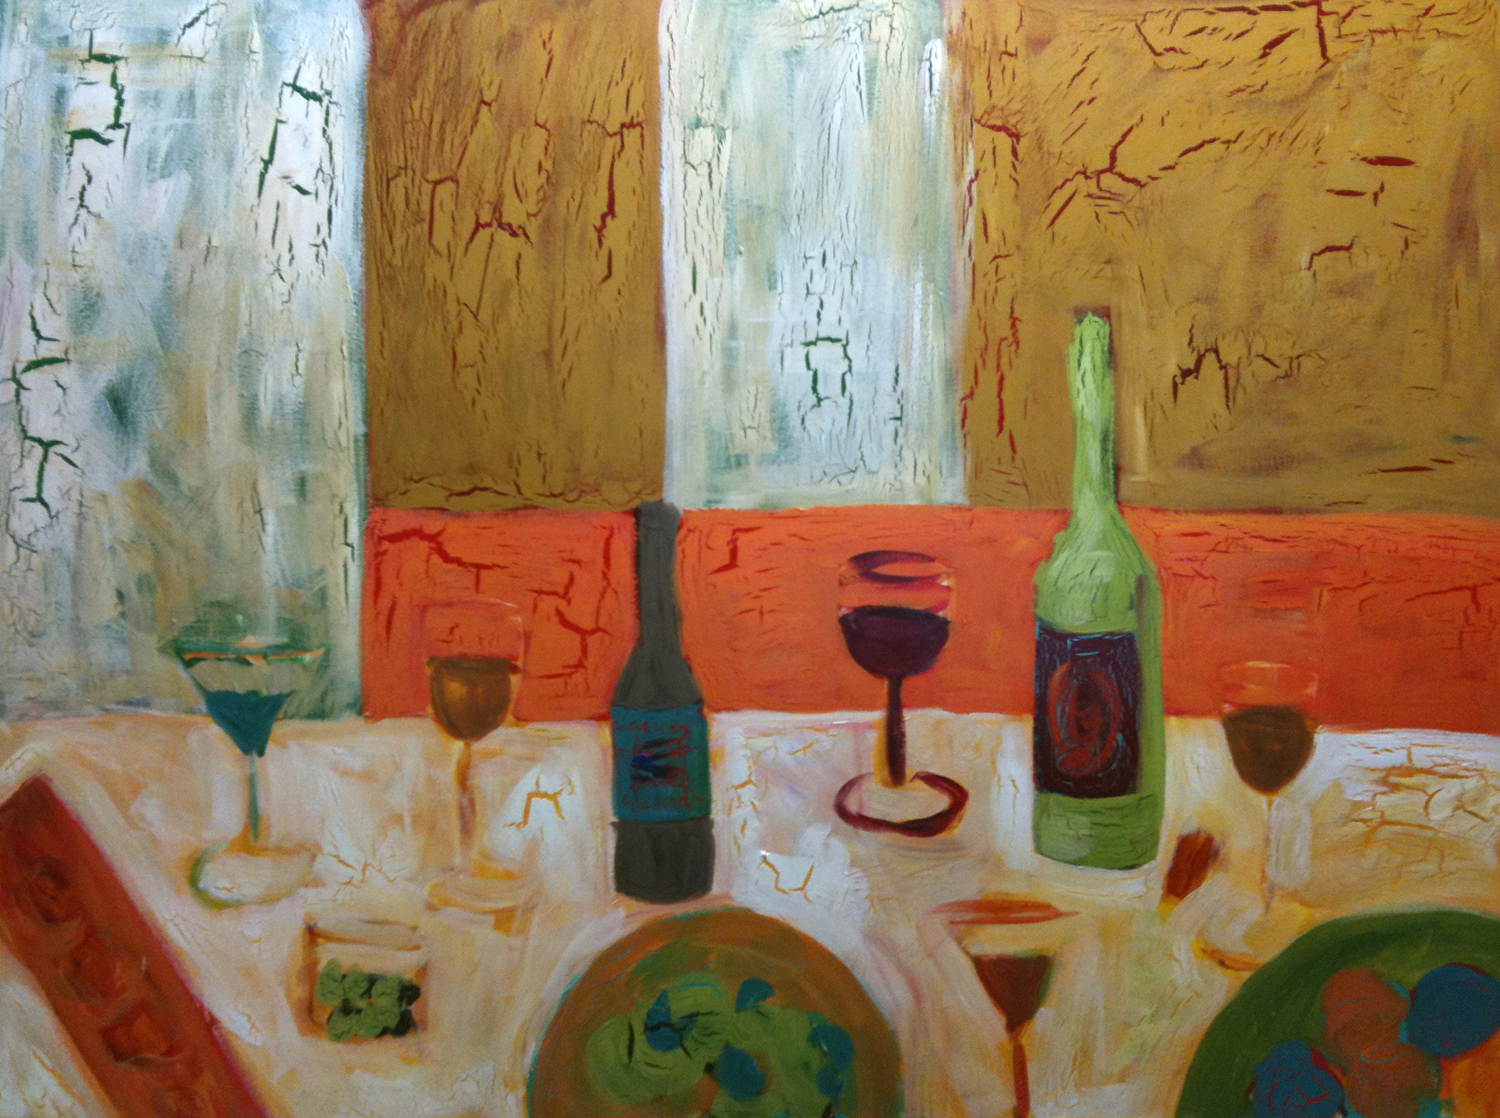 tracey-marshall-painting-featuring-wine-serviceIMG_1395_1.JPG